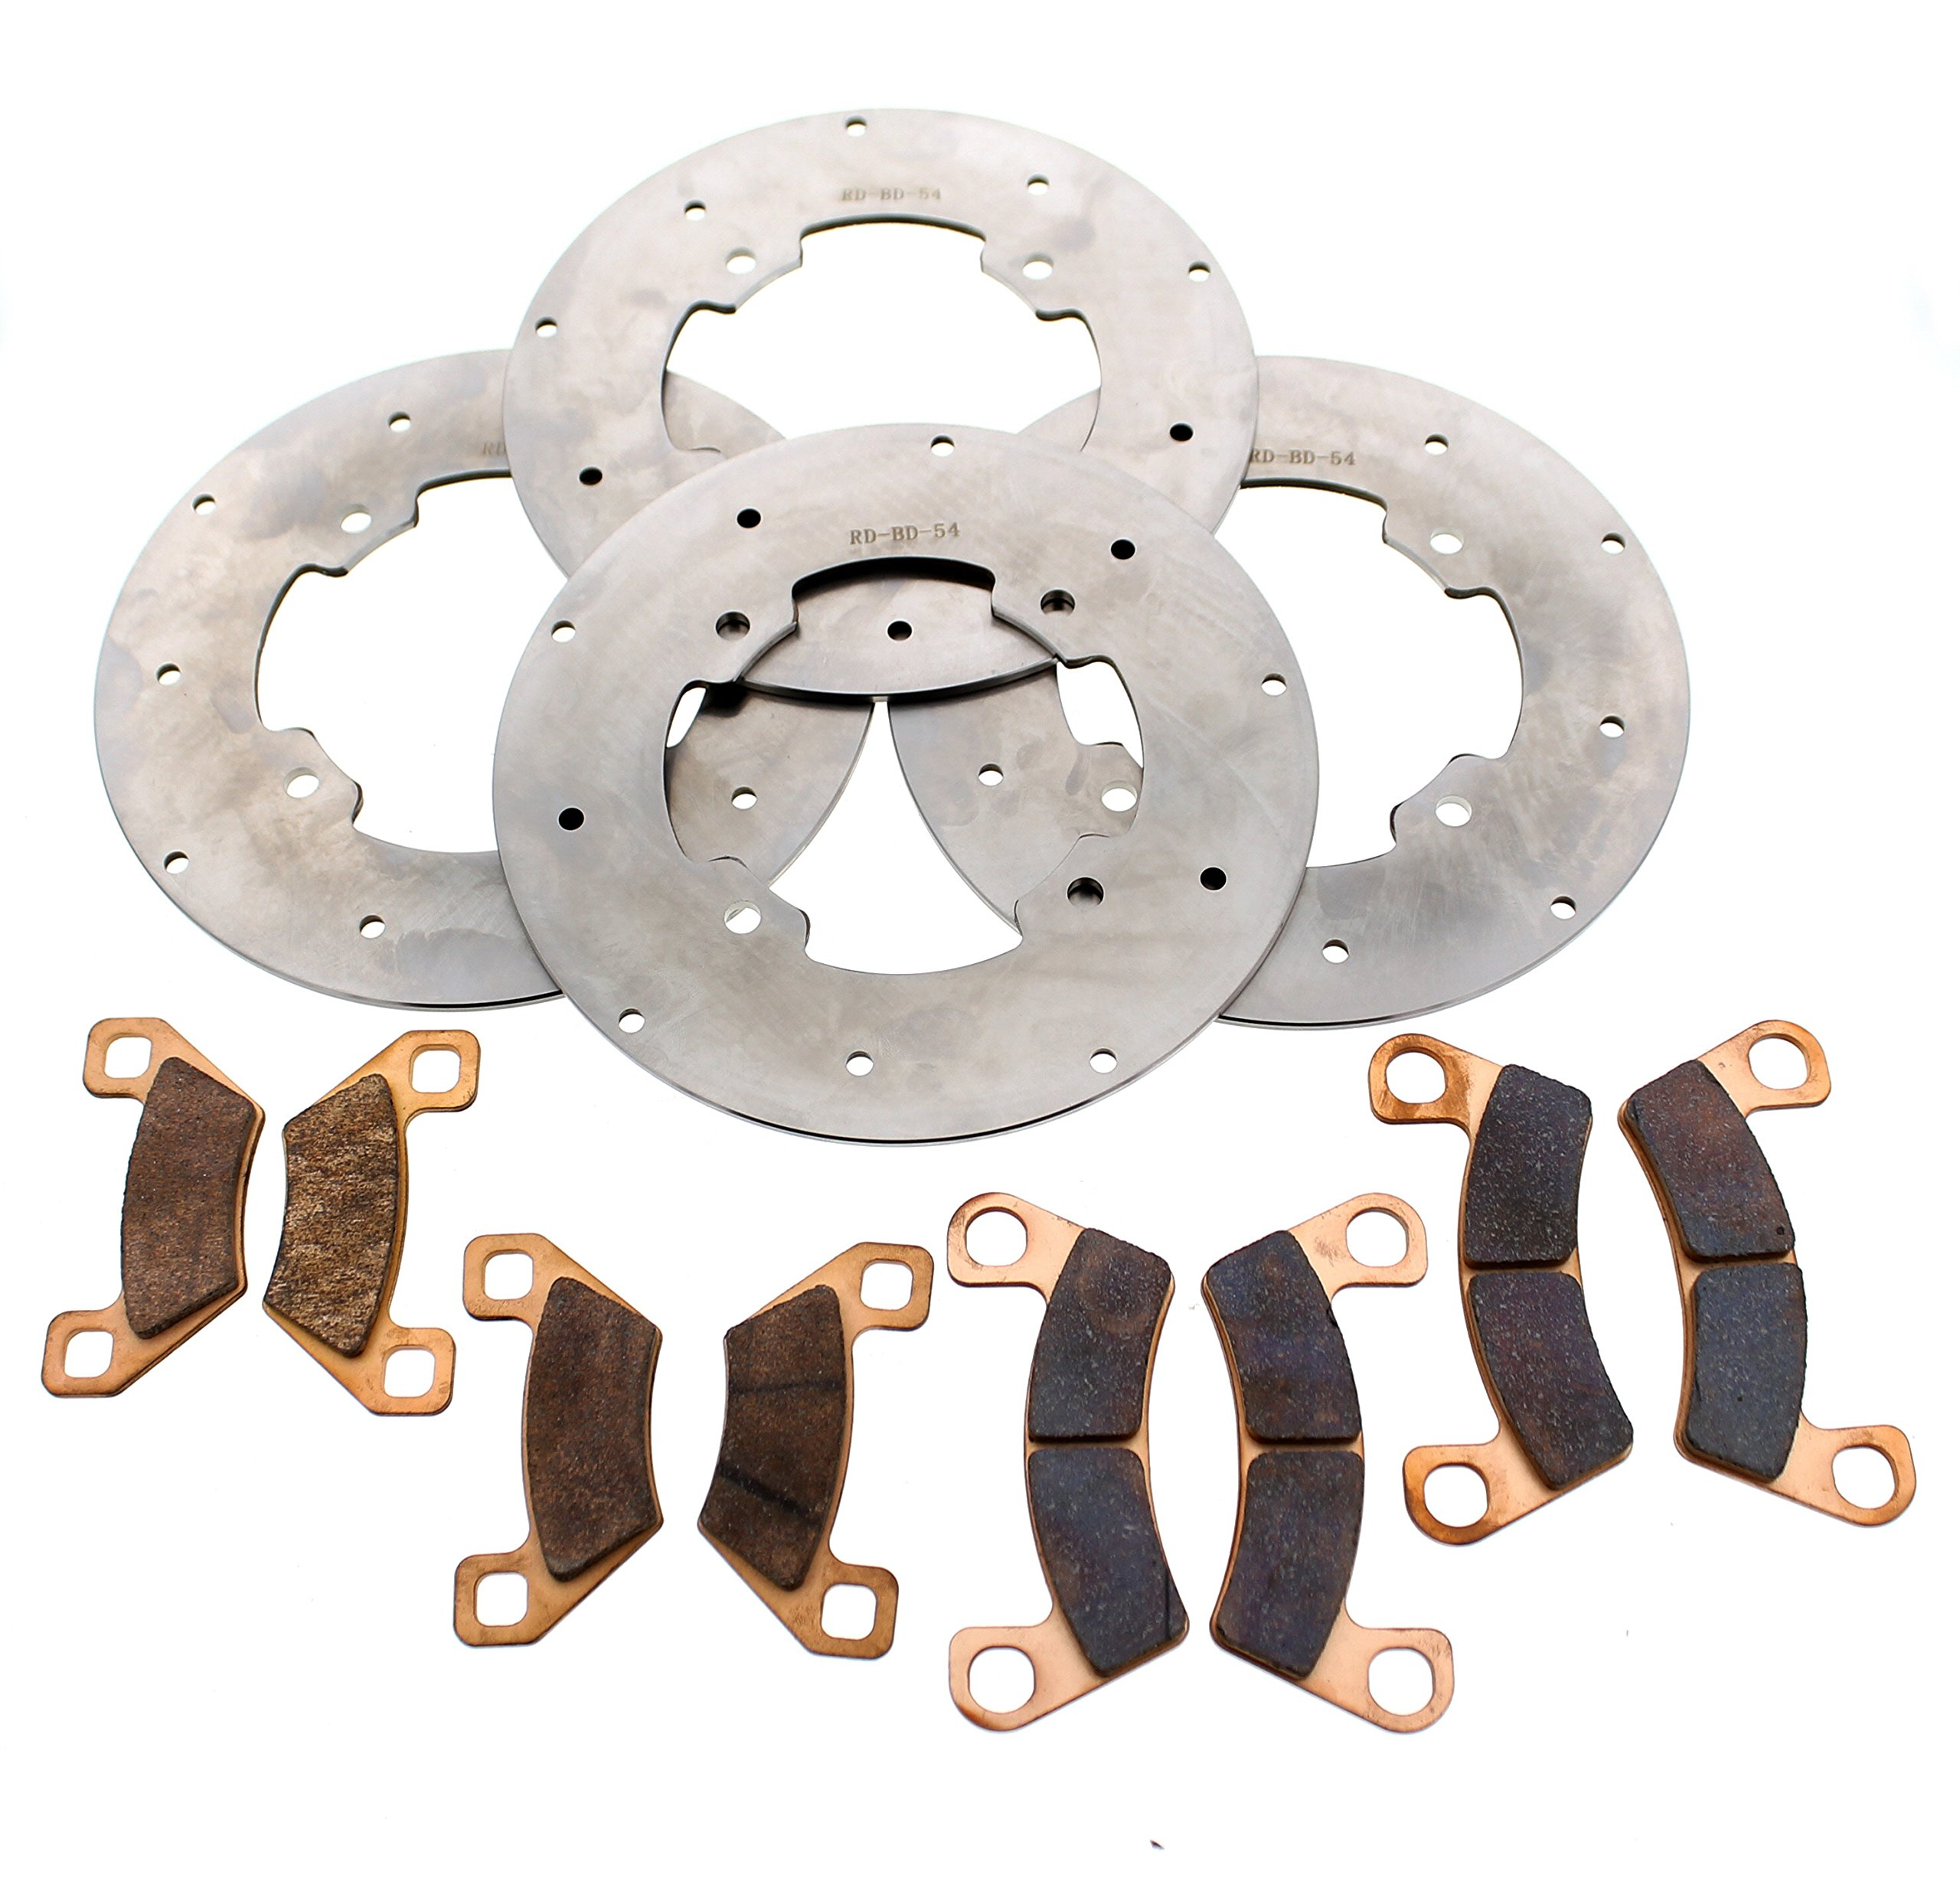 2015-17 Arctic Cat Wildcat Sport 700 LTD EPS Front & Rear Brake Rotors & Pads by Race-Driven